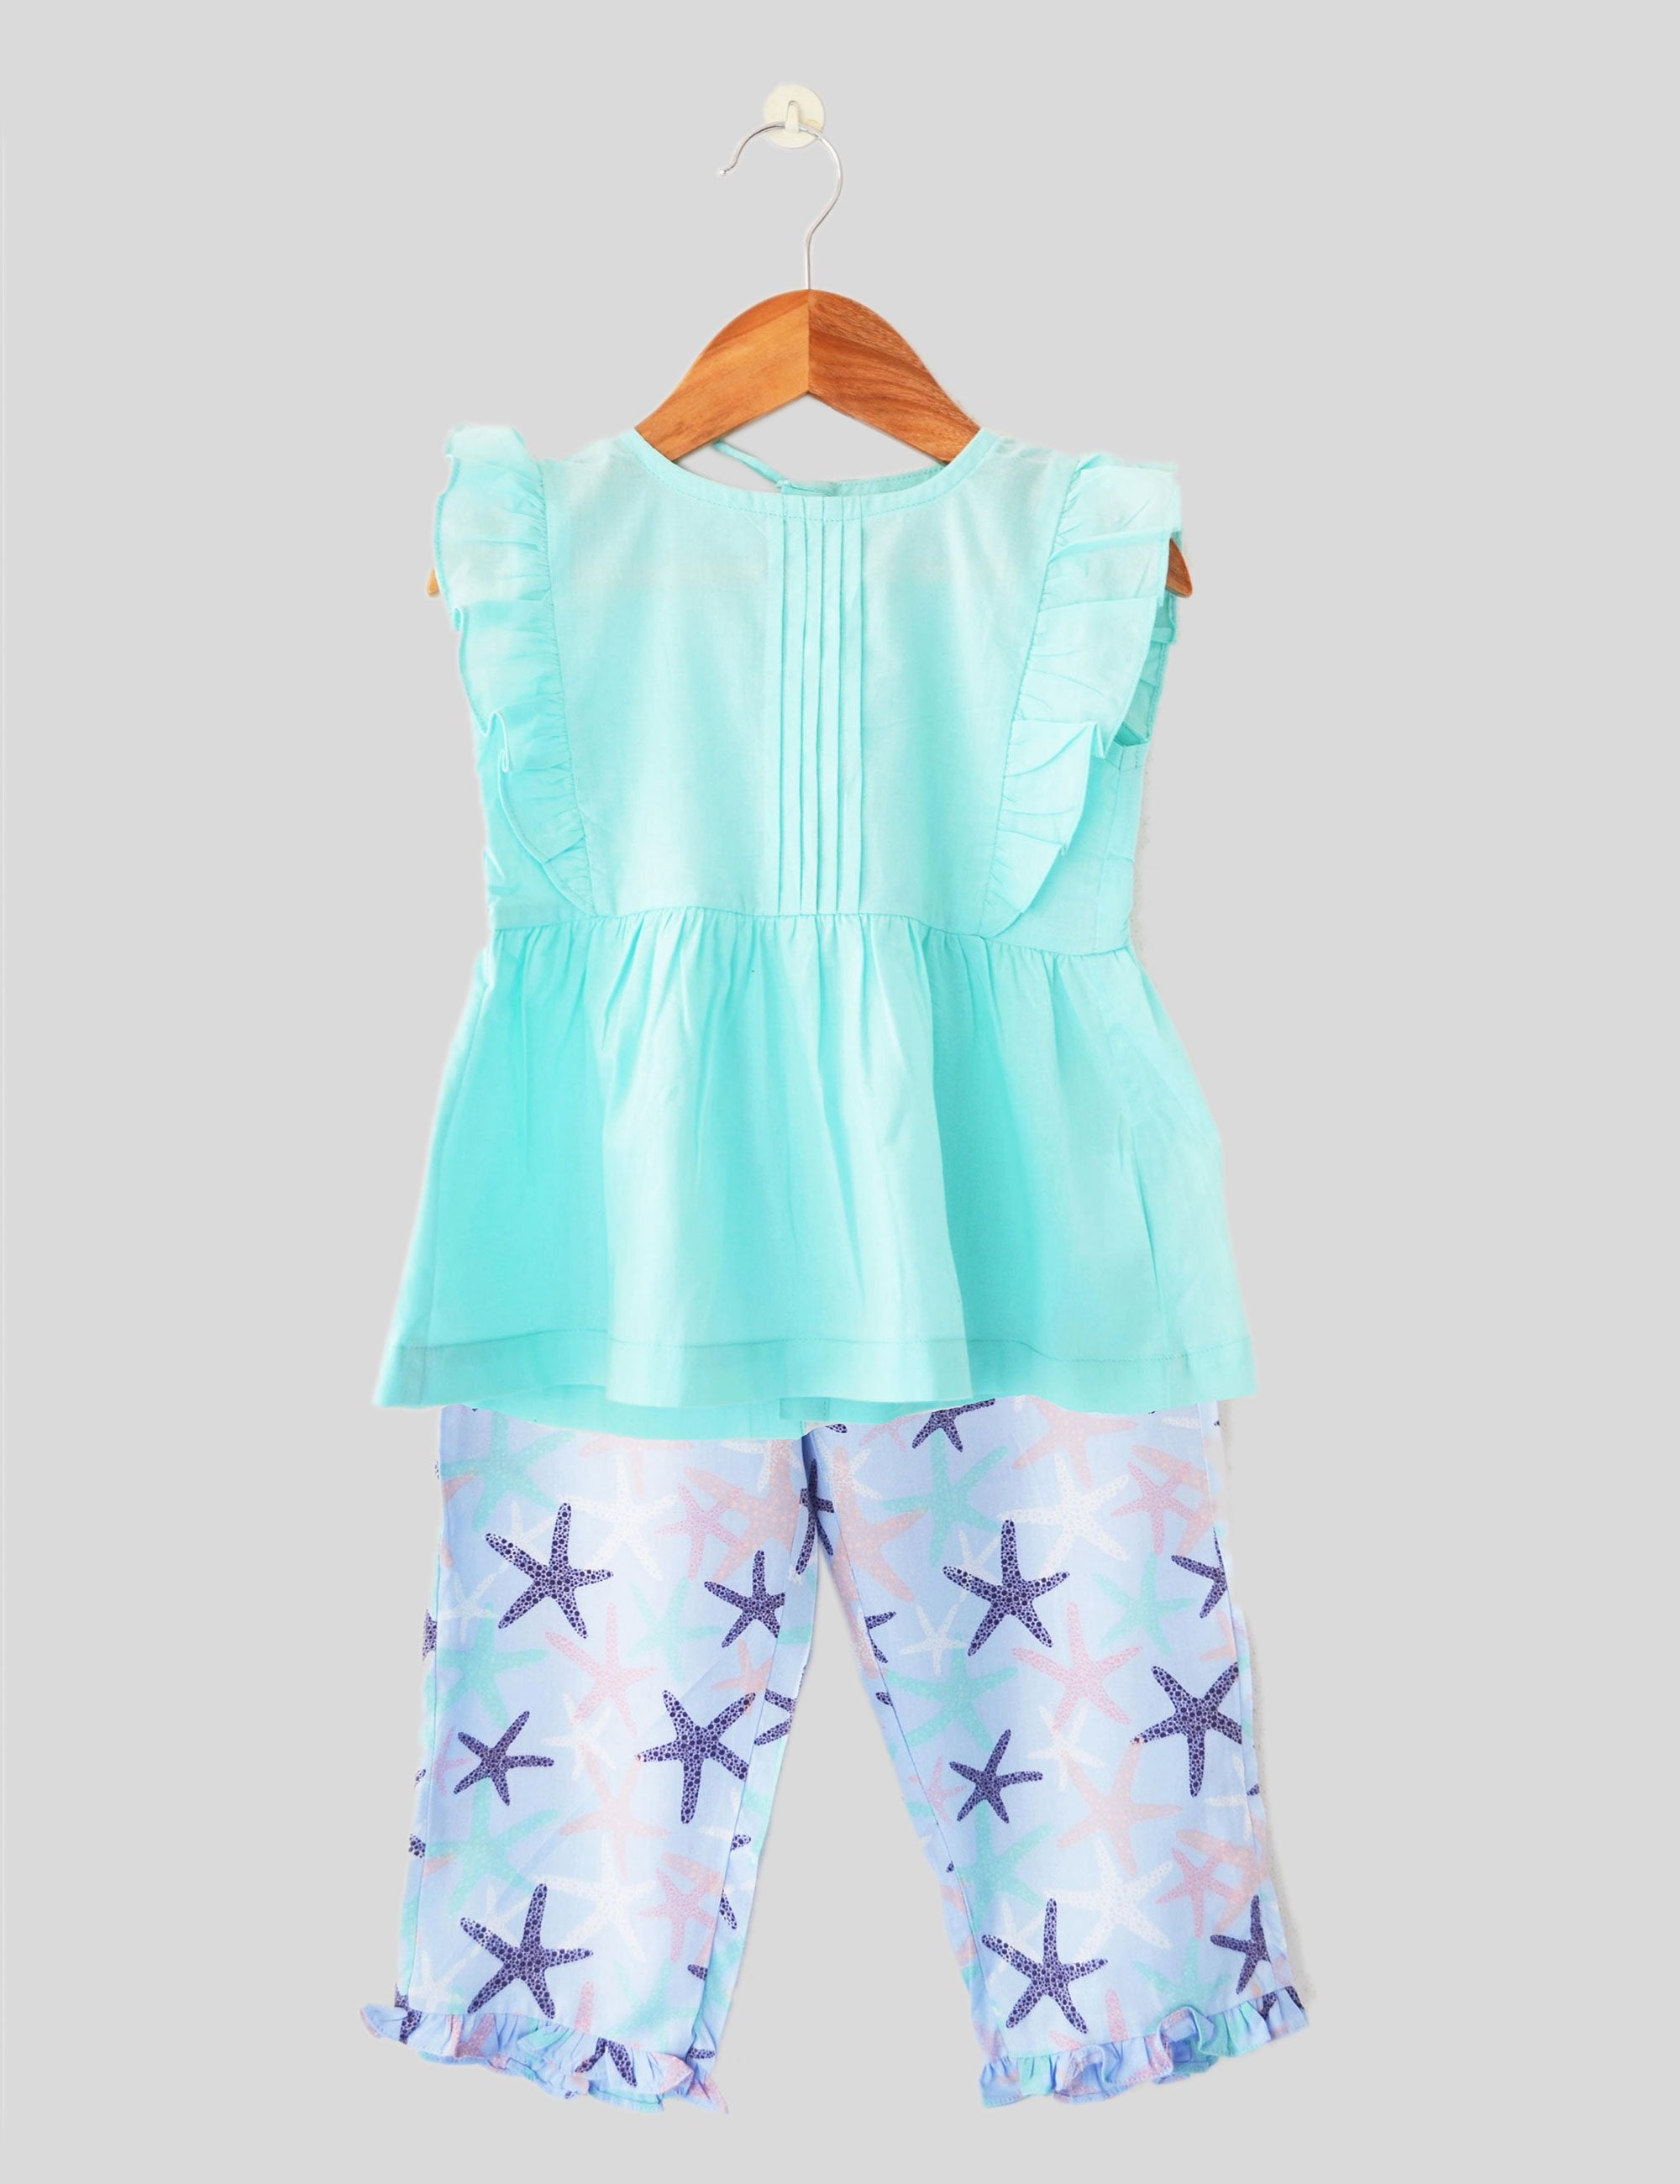 Coral Island Pajama Set in Blue and Green Colour for Girls